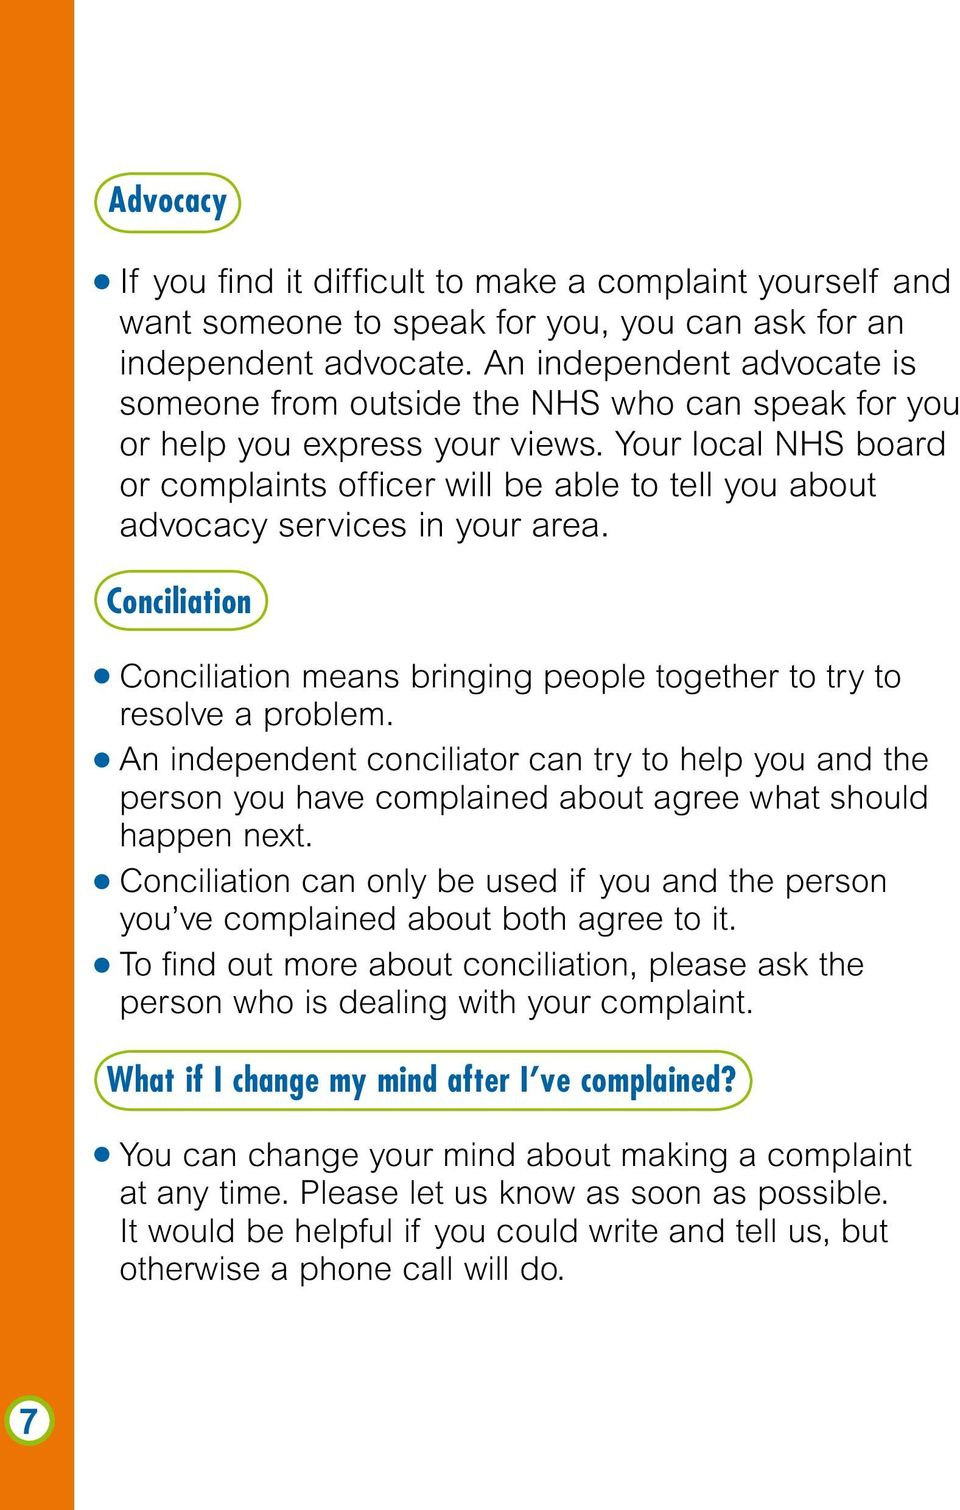 Your local NHS board or complaints officer will be able to tell you about advocacy services in your area. Conciliation Conciliation means bringing people together to try to resolve a problem.